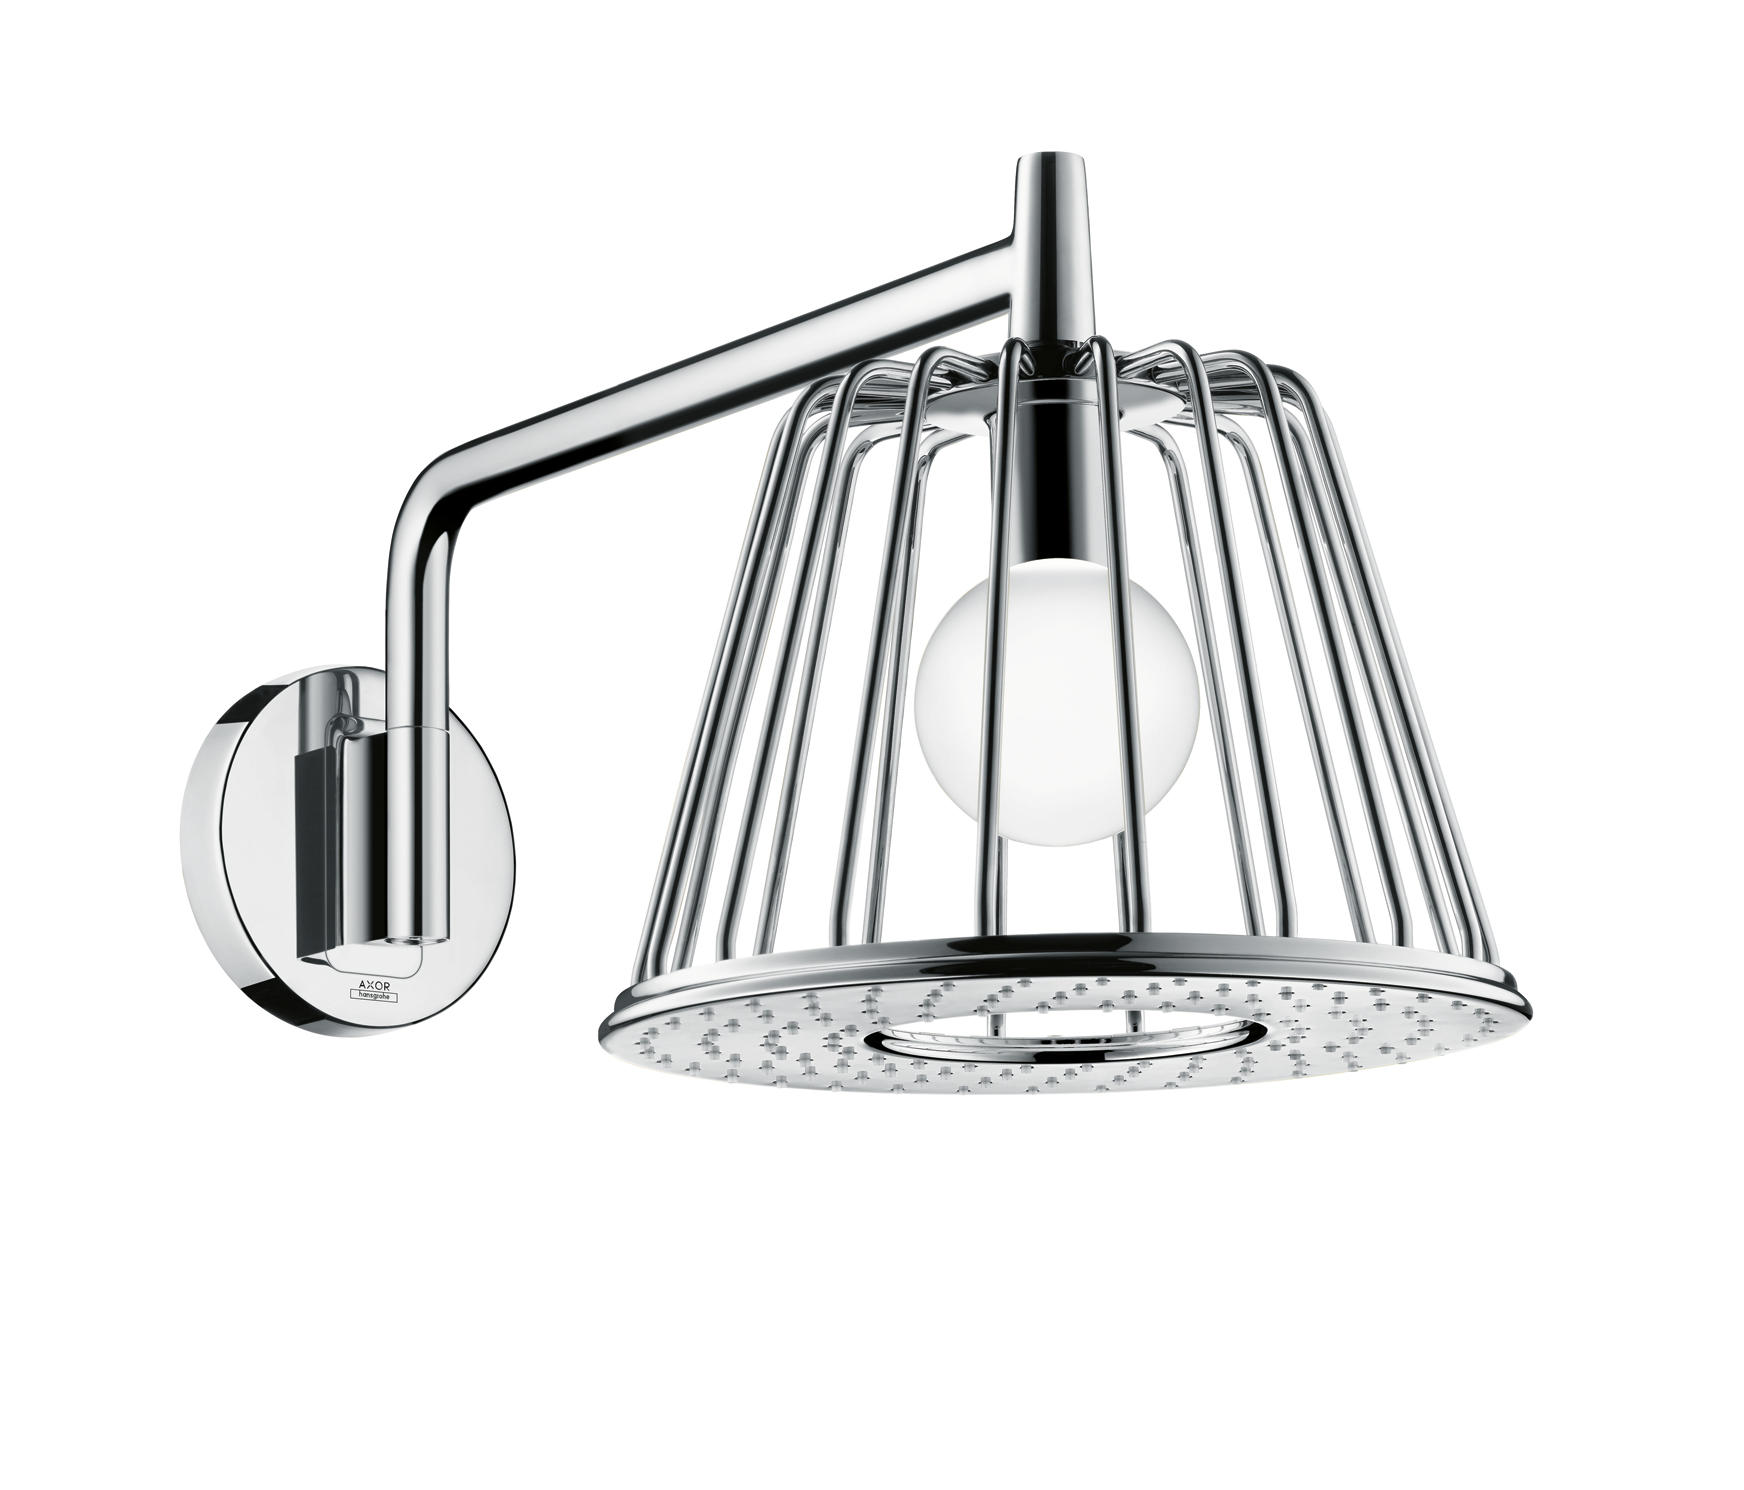 AXOR LAMPSHOWER 1JET WITH SHOWER ARM - Shower taps / mixers from ...